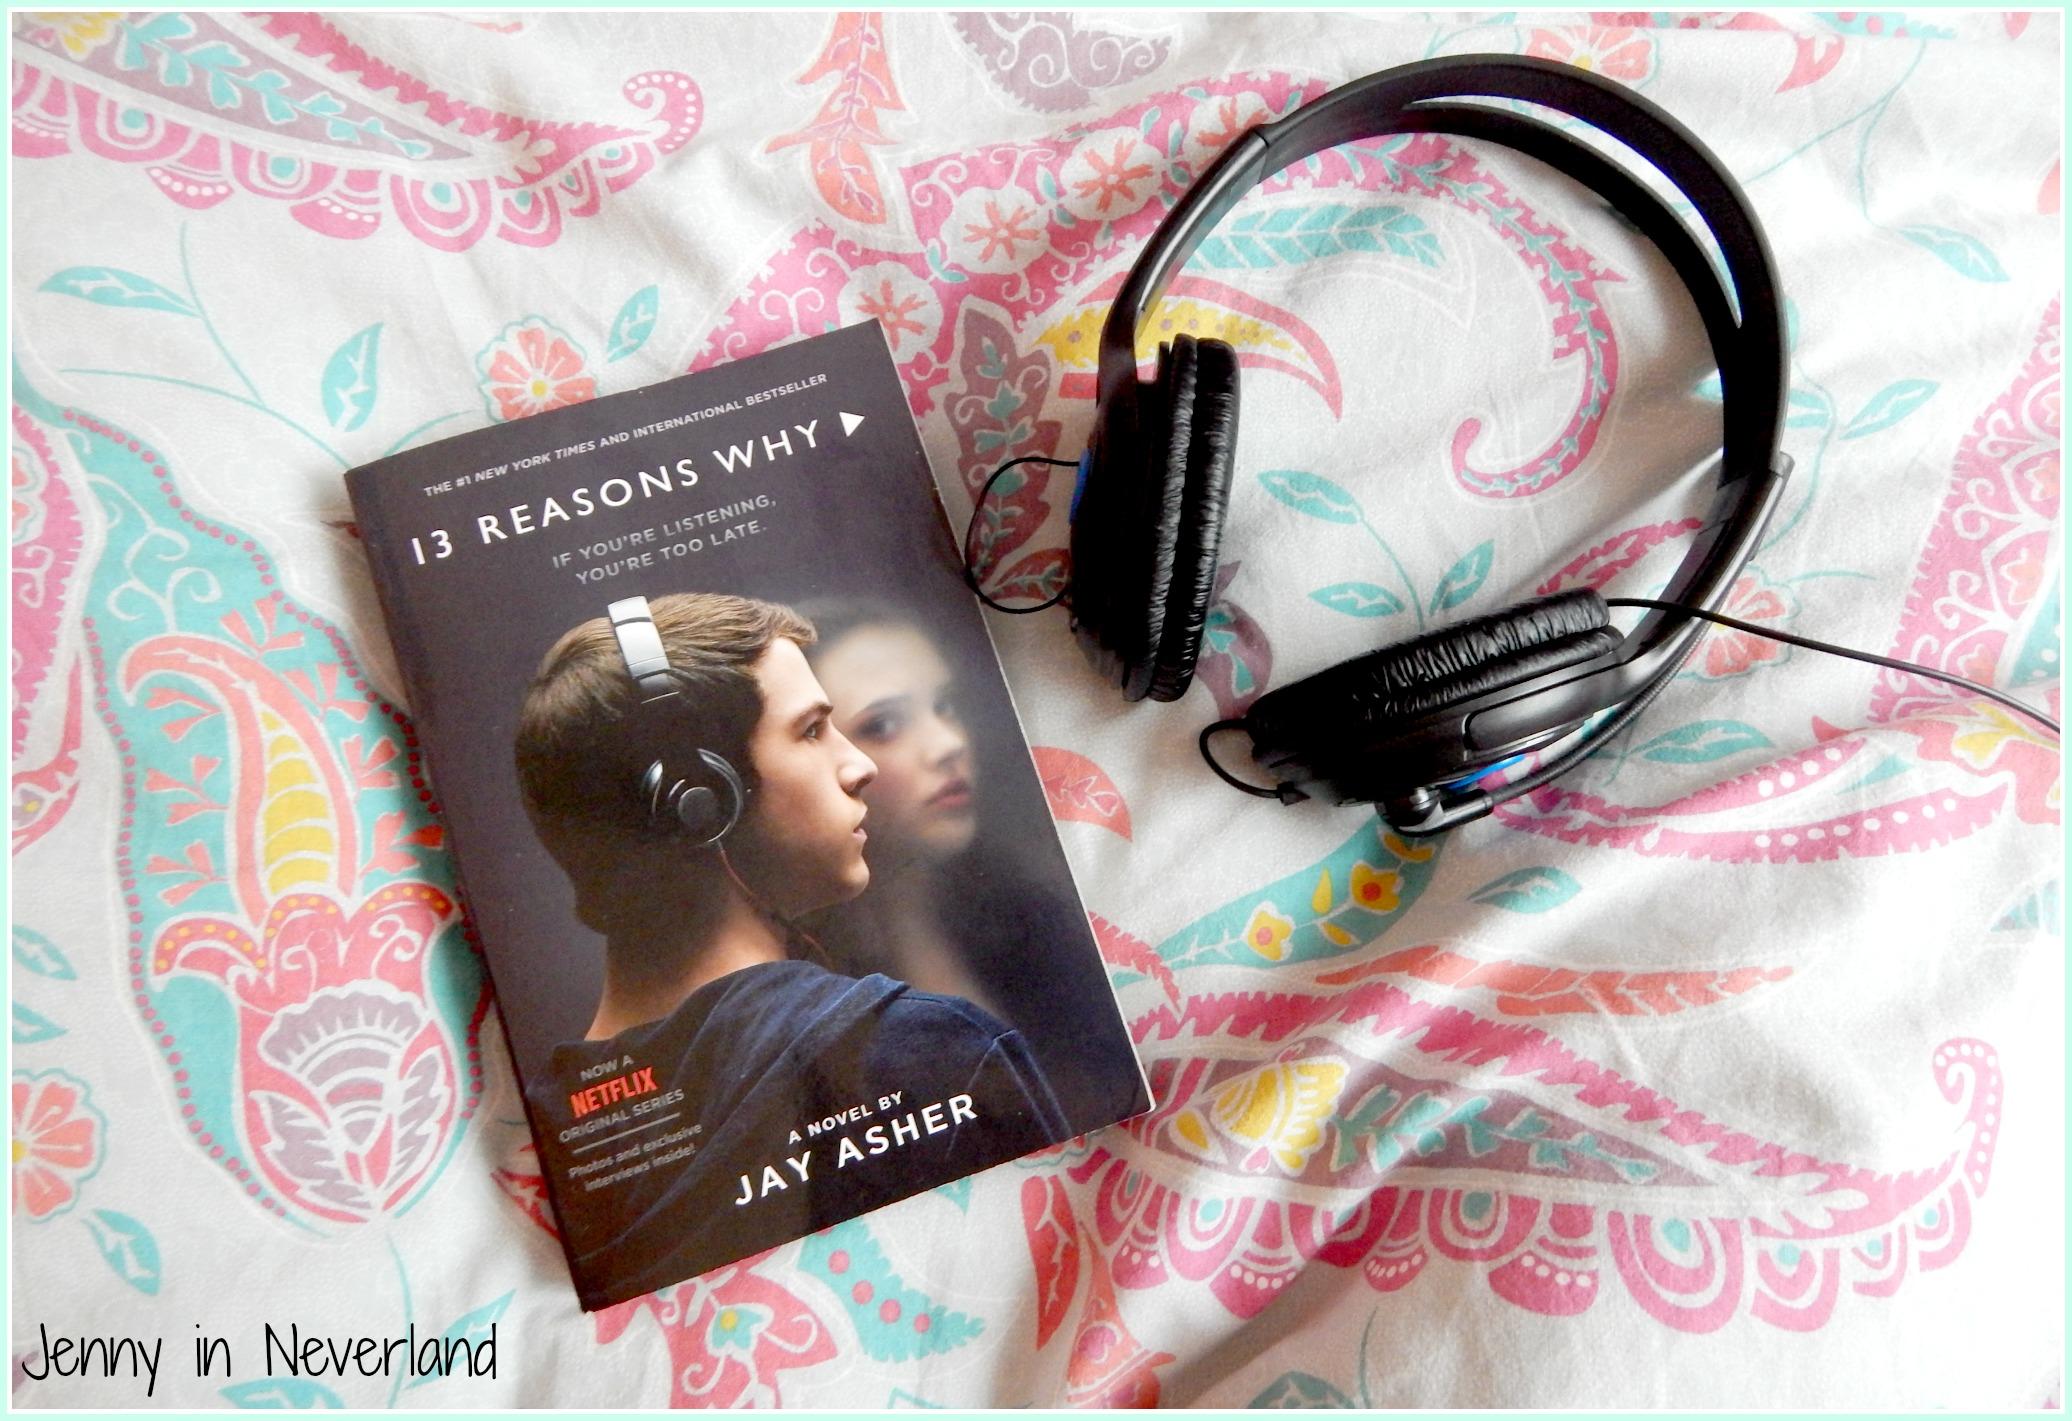 13 Reasons Why Book Show Comparison Jenny In Neverland